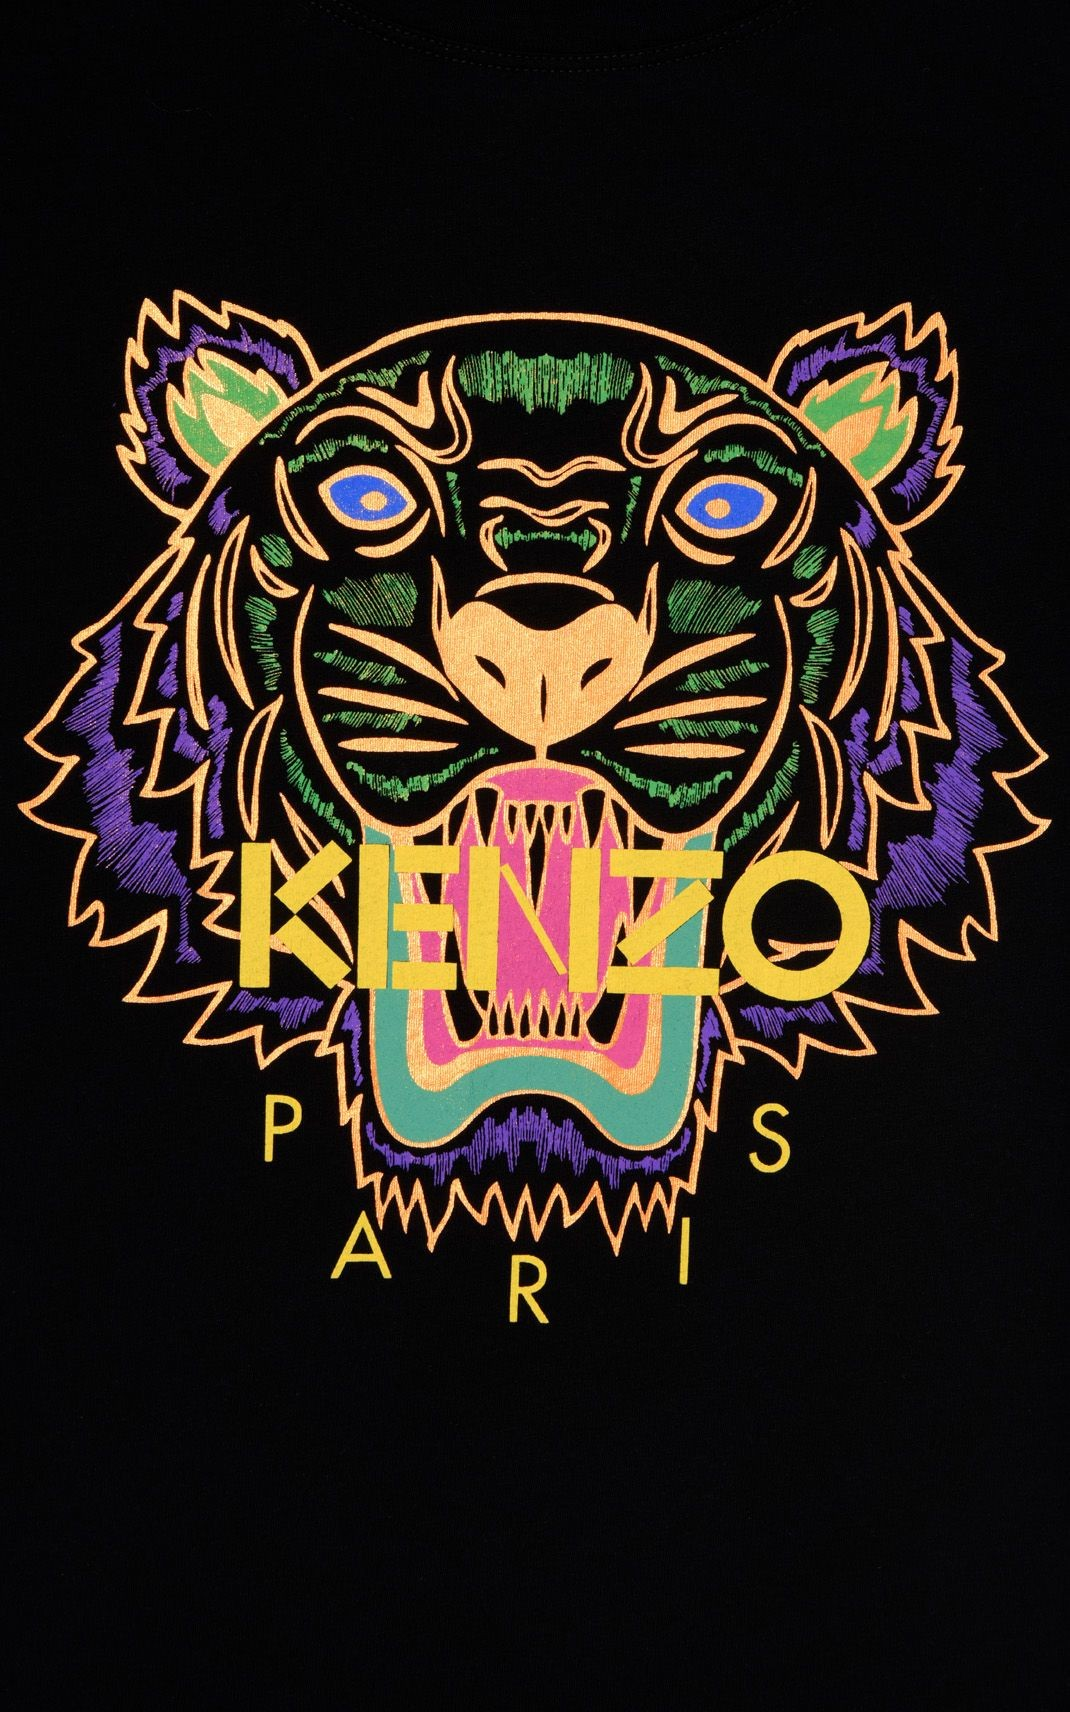 Tigers Art Iphone Wallpaper Awesome Black Holiday Capsule Kenzo Logo 1010511 Hd Wallpaper Backgrounds Download